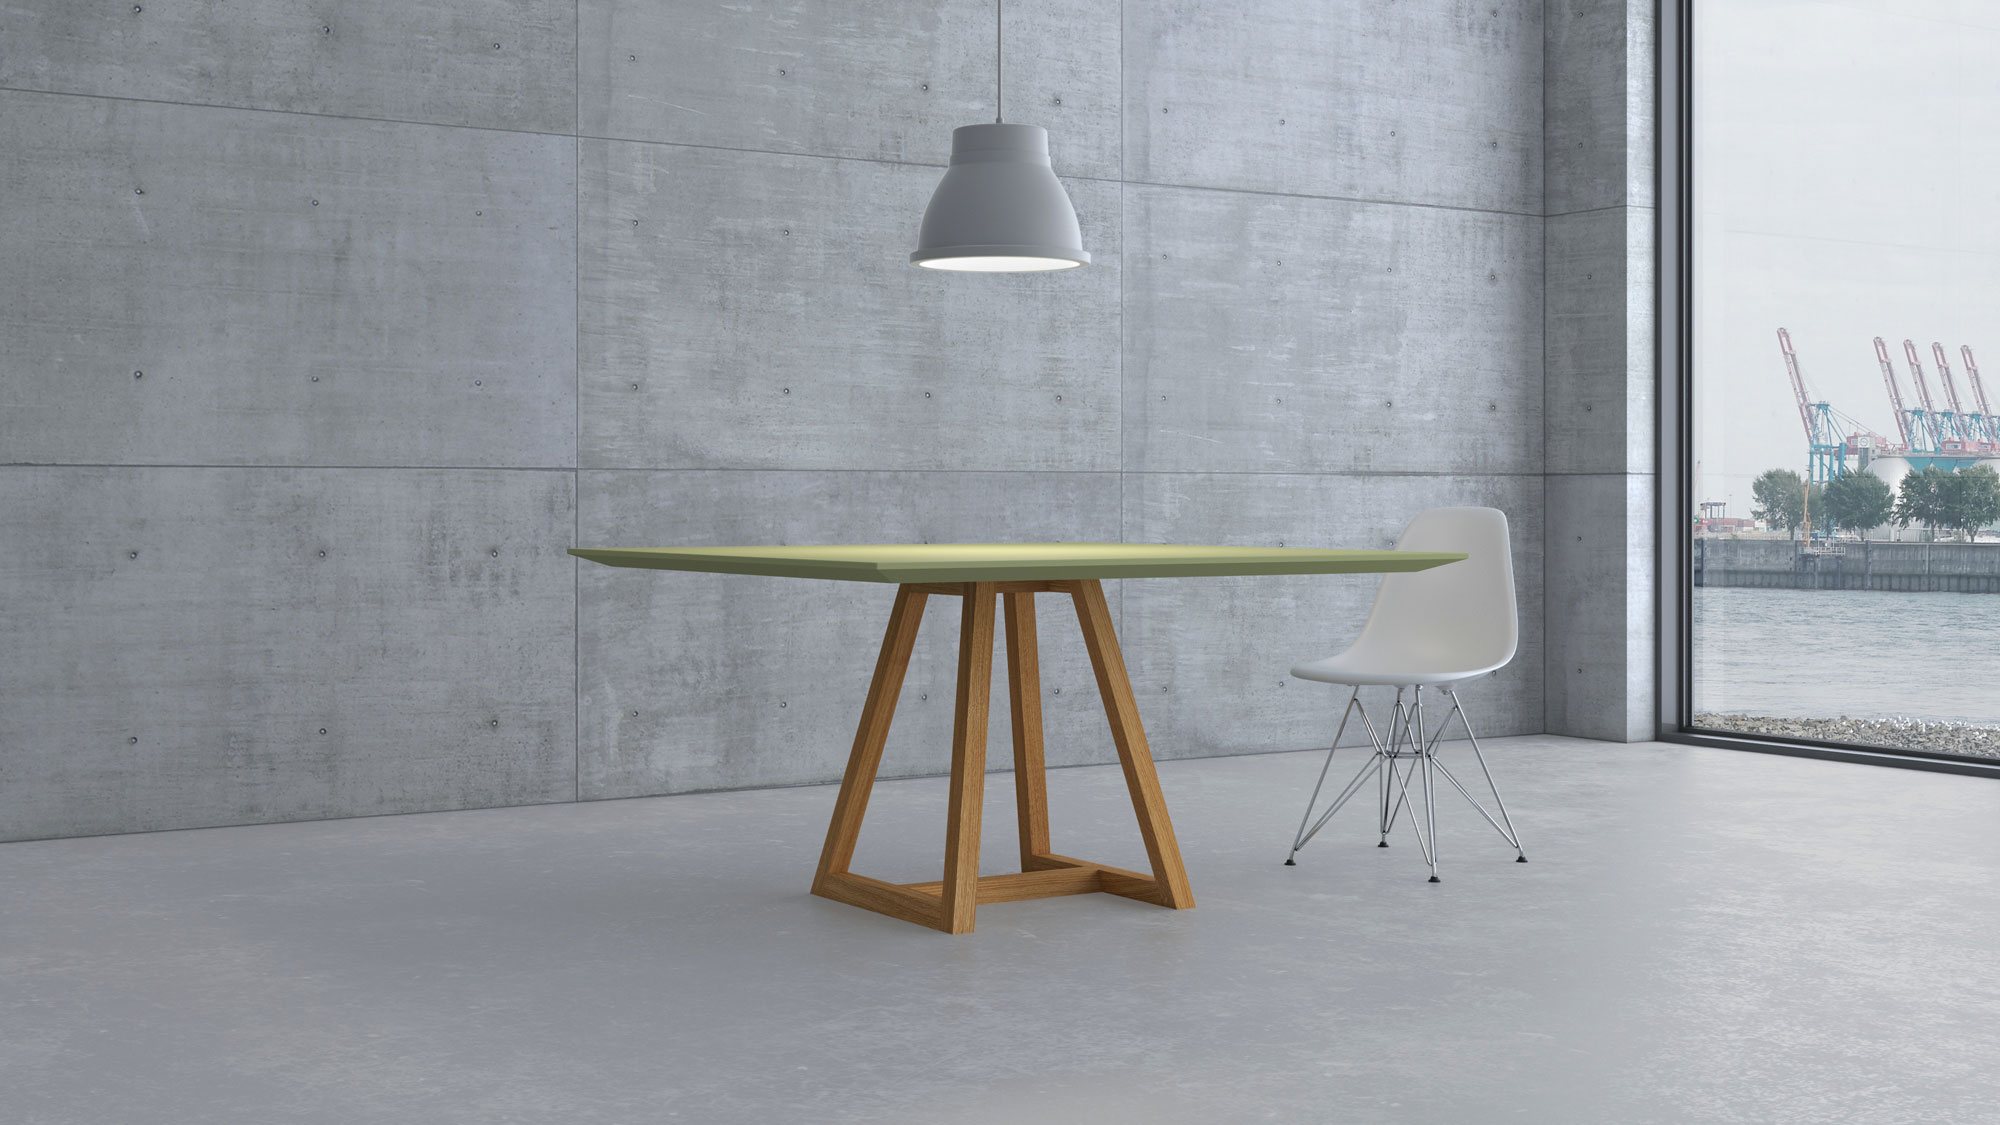 Linoleum table MARGO SQUARE LINO cam1-kalend custom made in solid wood by vitamin design